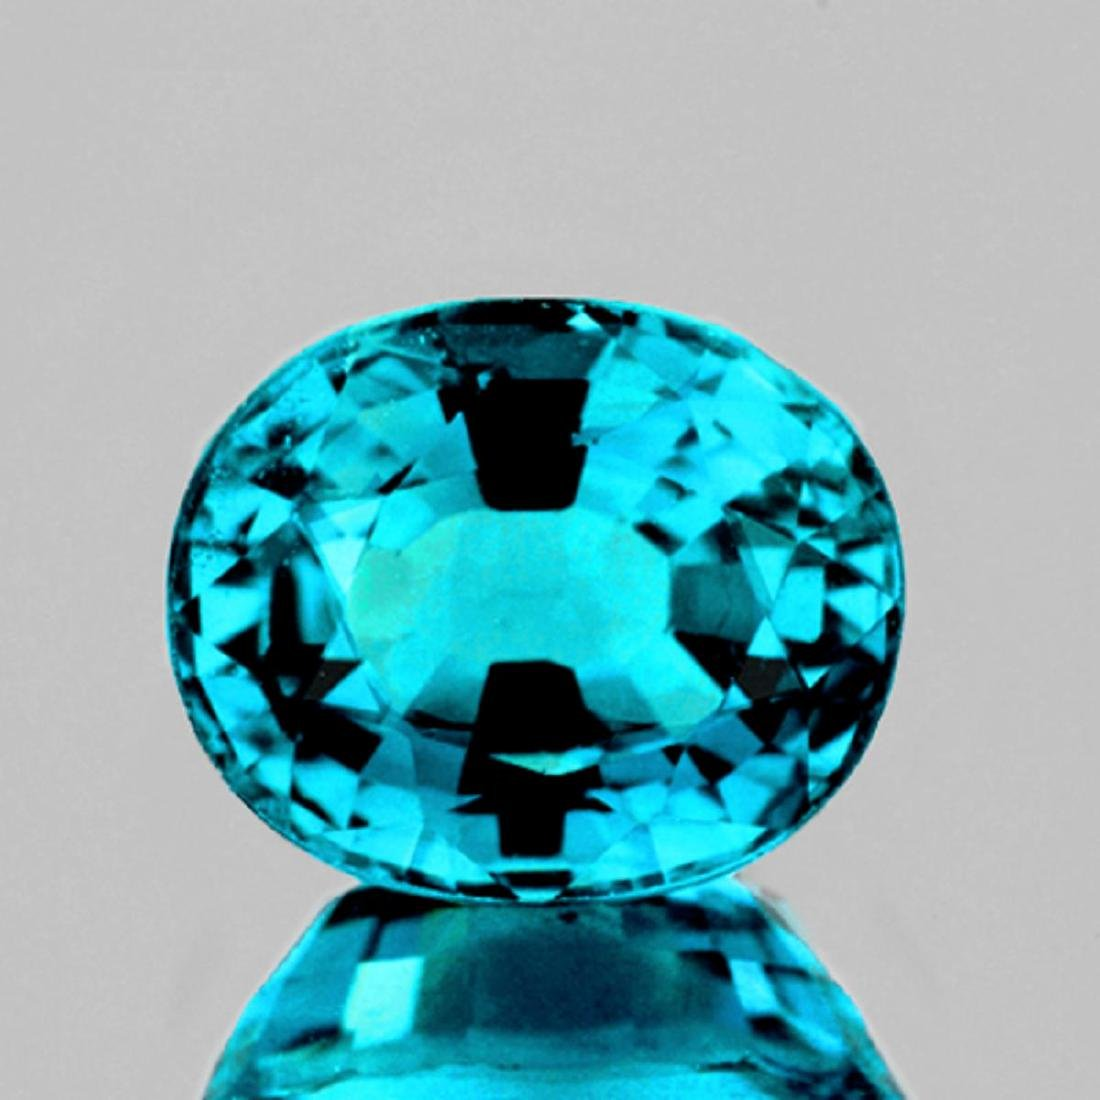 Natural Premium Electric Blue Zircon 5.02 Ct - FL